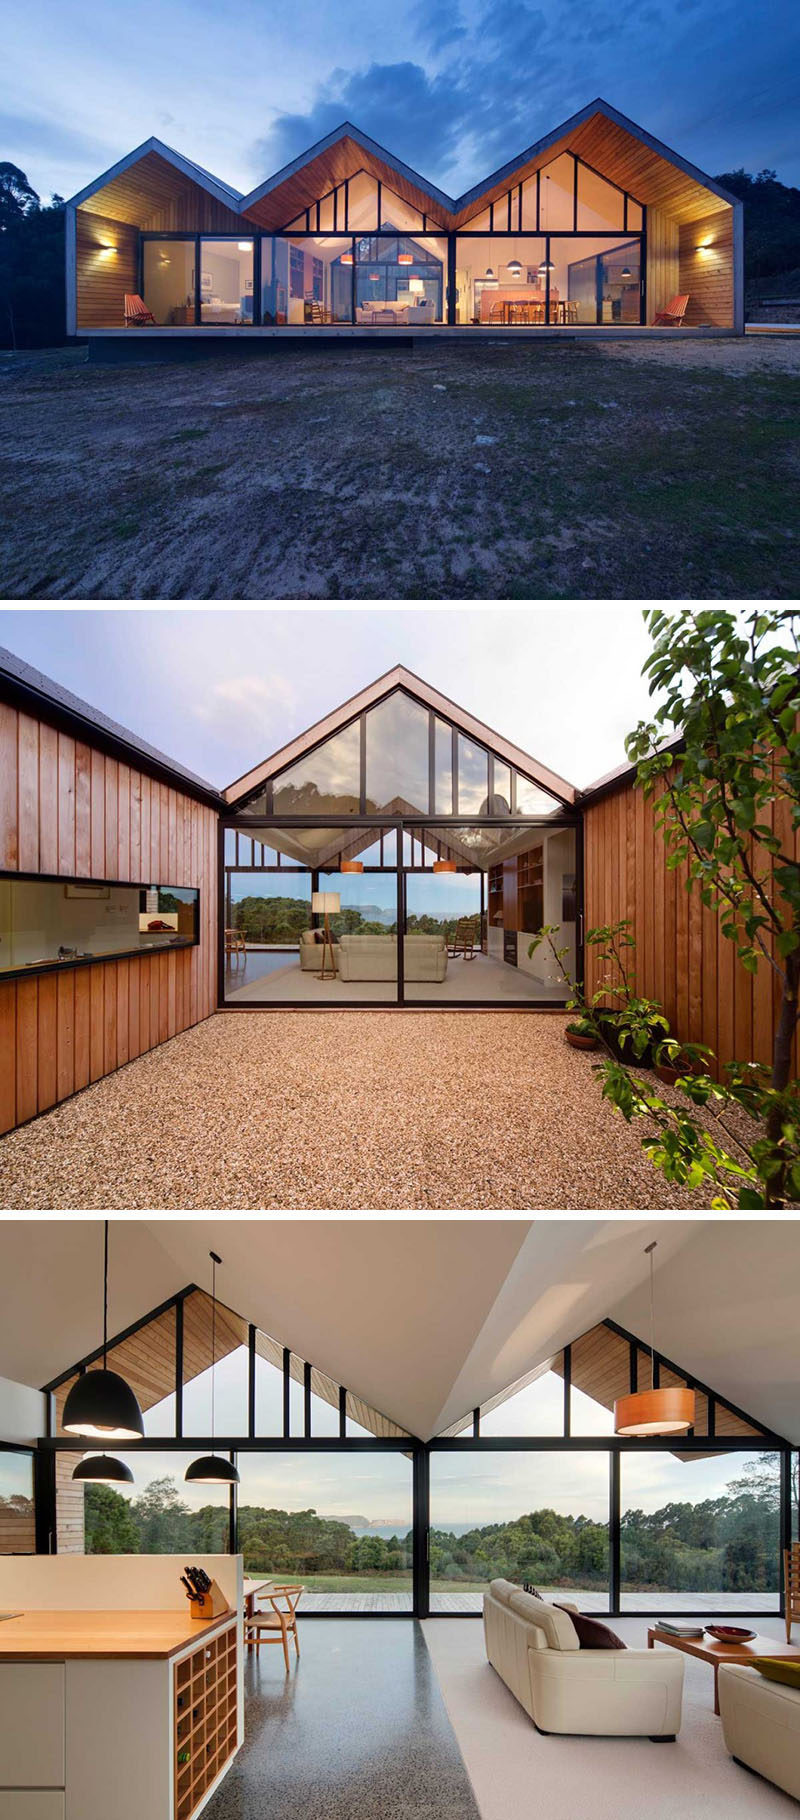 15 Awesome Examples Where Windows Follow The Roofline // The upper windows of this Australian home follow the lines of the roof and let more light shine into the parts of the home where the family spends most of their time, helping keep the space bright at all times of the day.